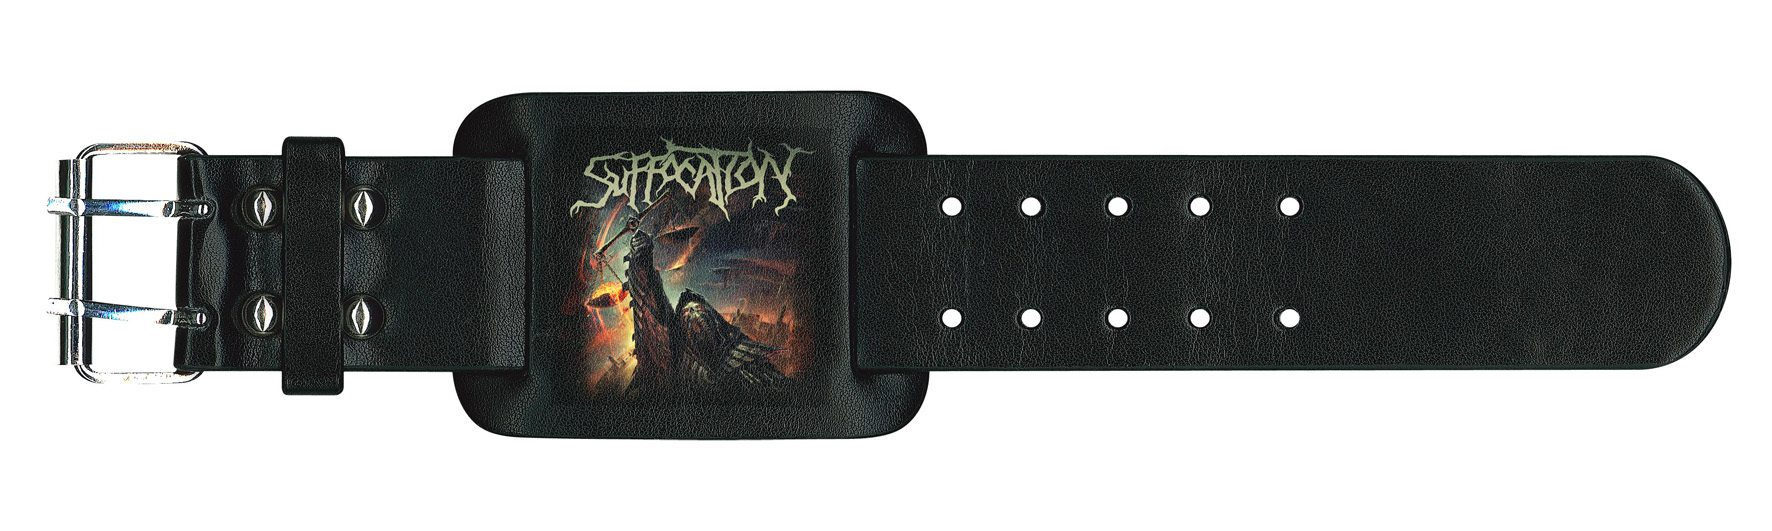 Suffocation Leather Wristband Pinnacle Of Bedlam